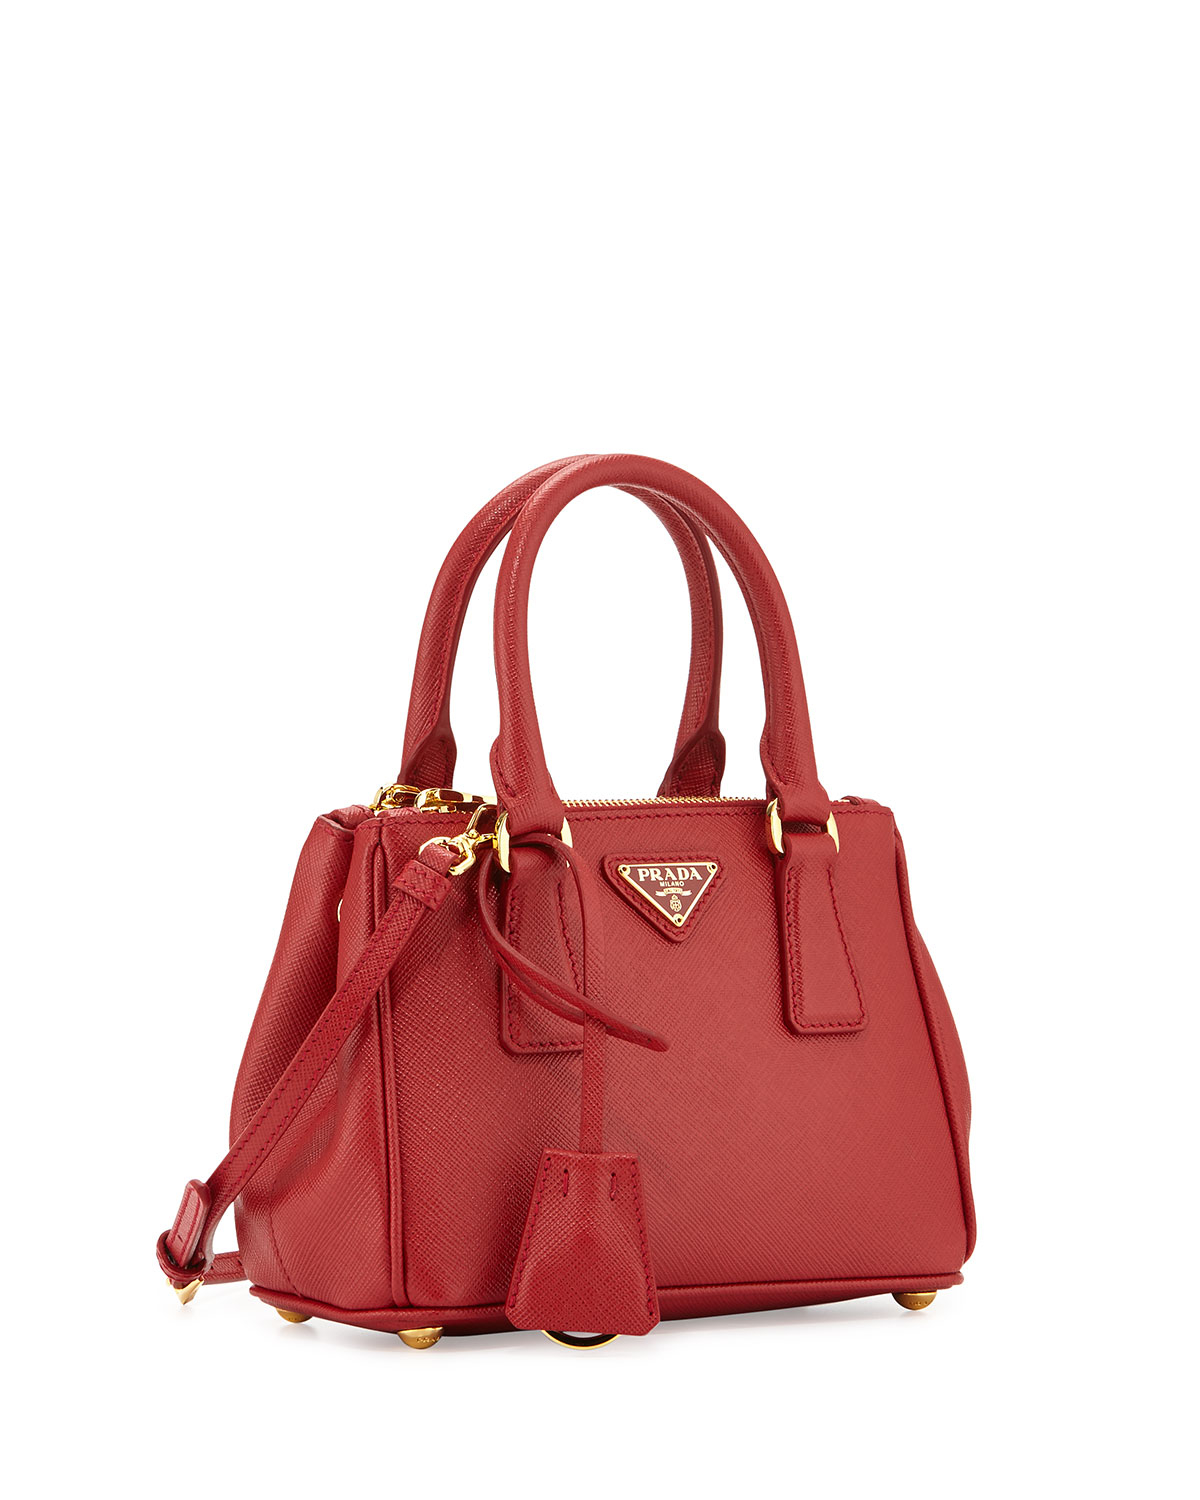 ba61b3c10935 ... sweden lyst prada extra mini saffiano leather cross body bag in red  bbf8d 2f36b